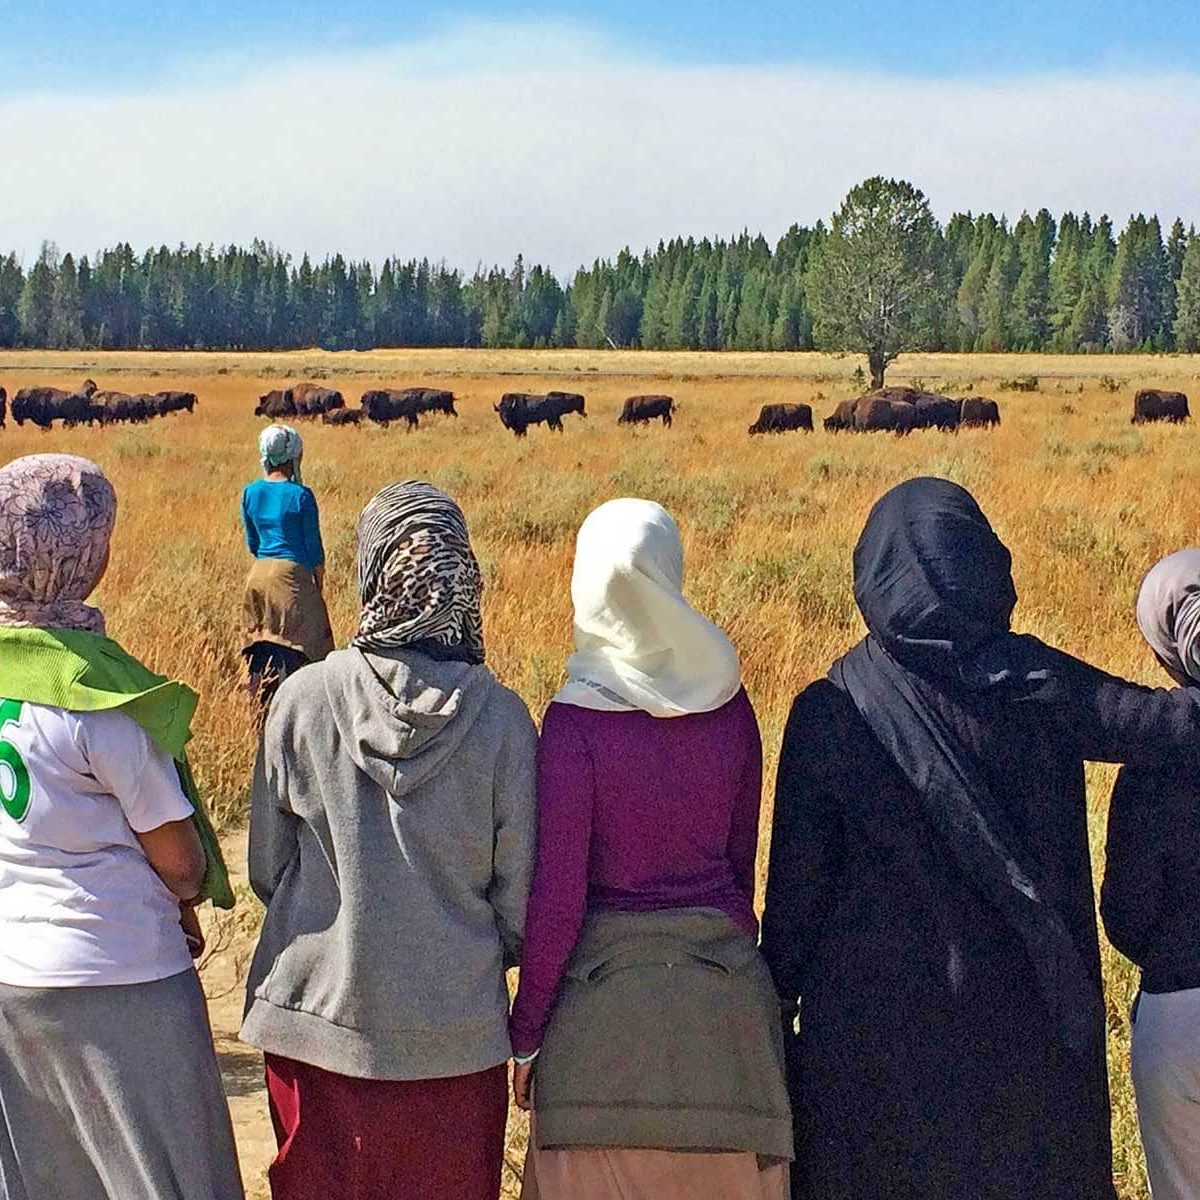 Looking out on bison at Yellowstone